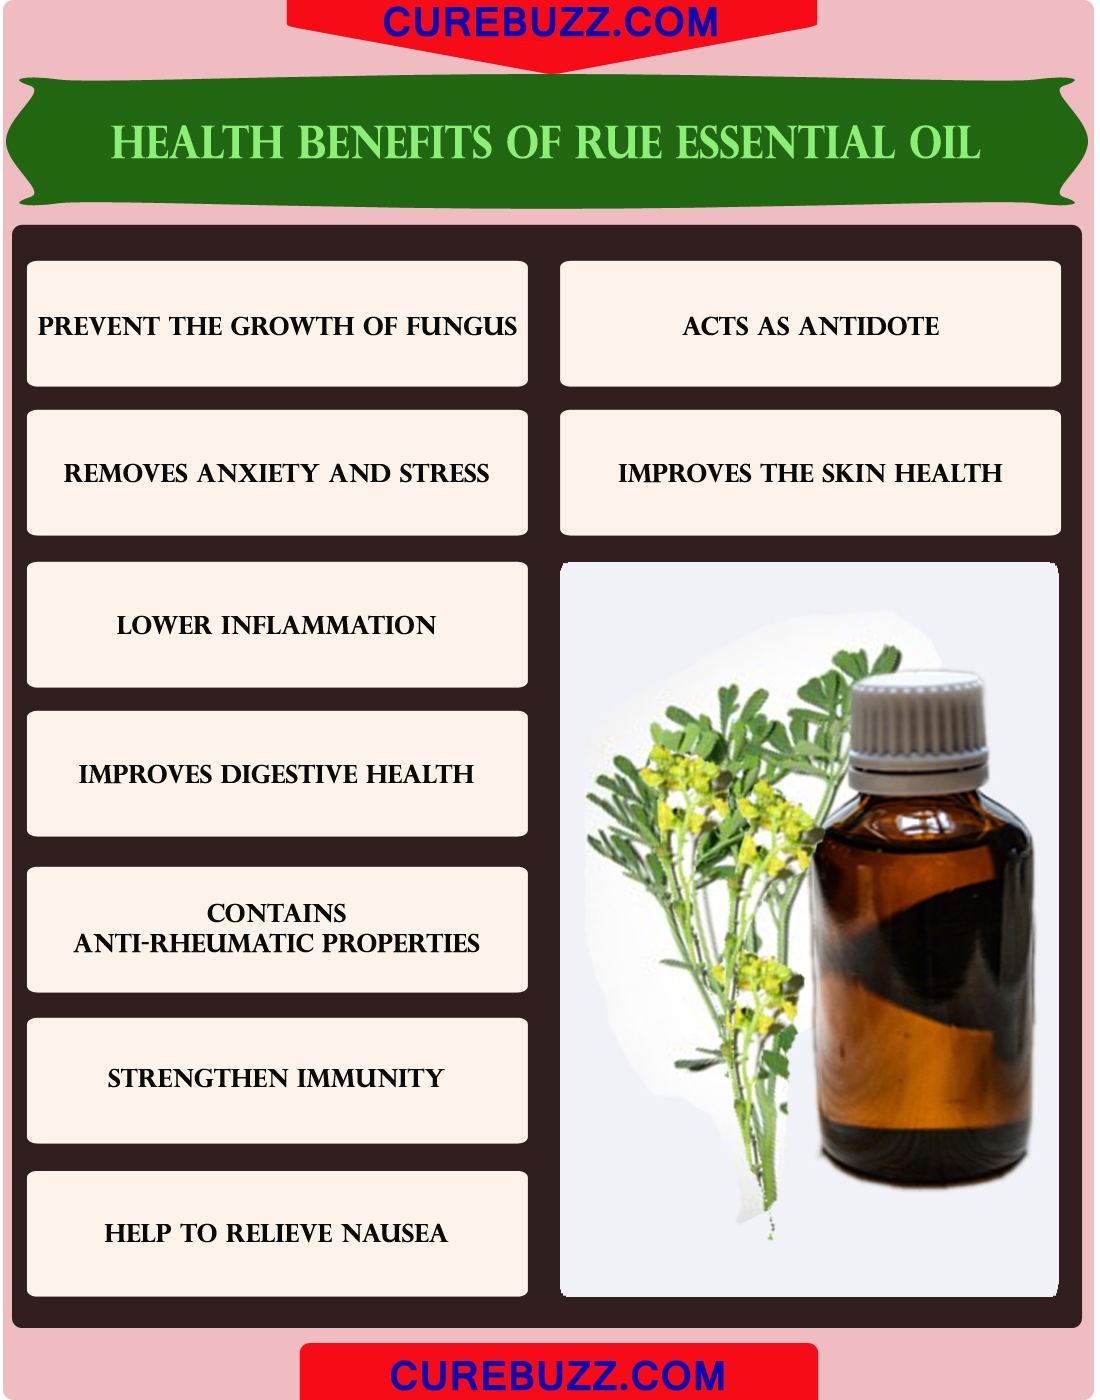 Health Benefits of Rue Essential Oil